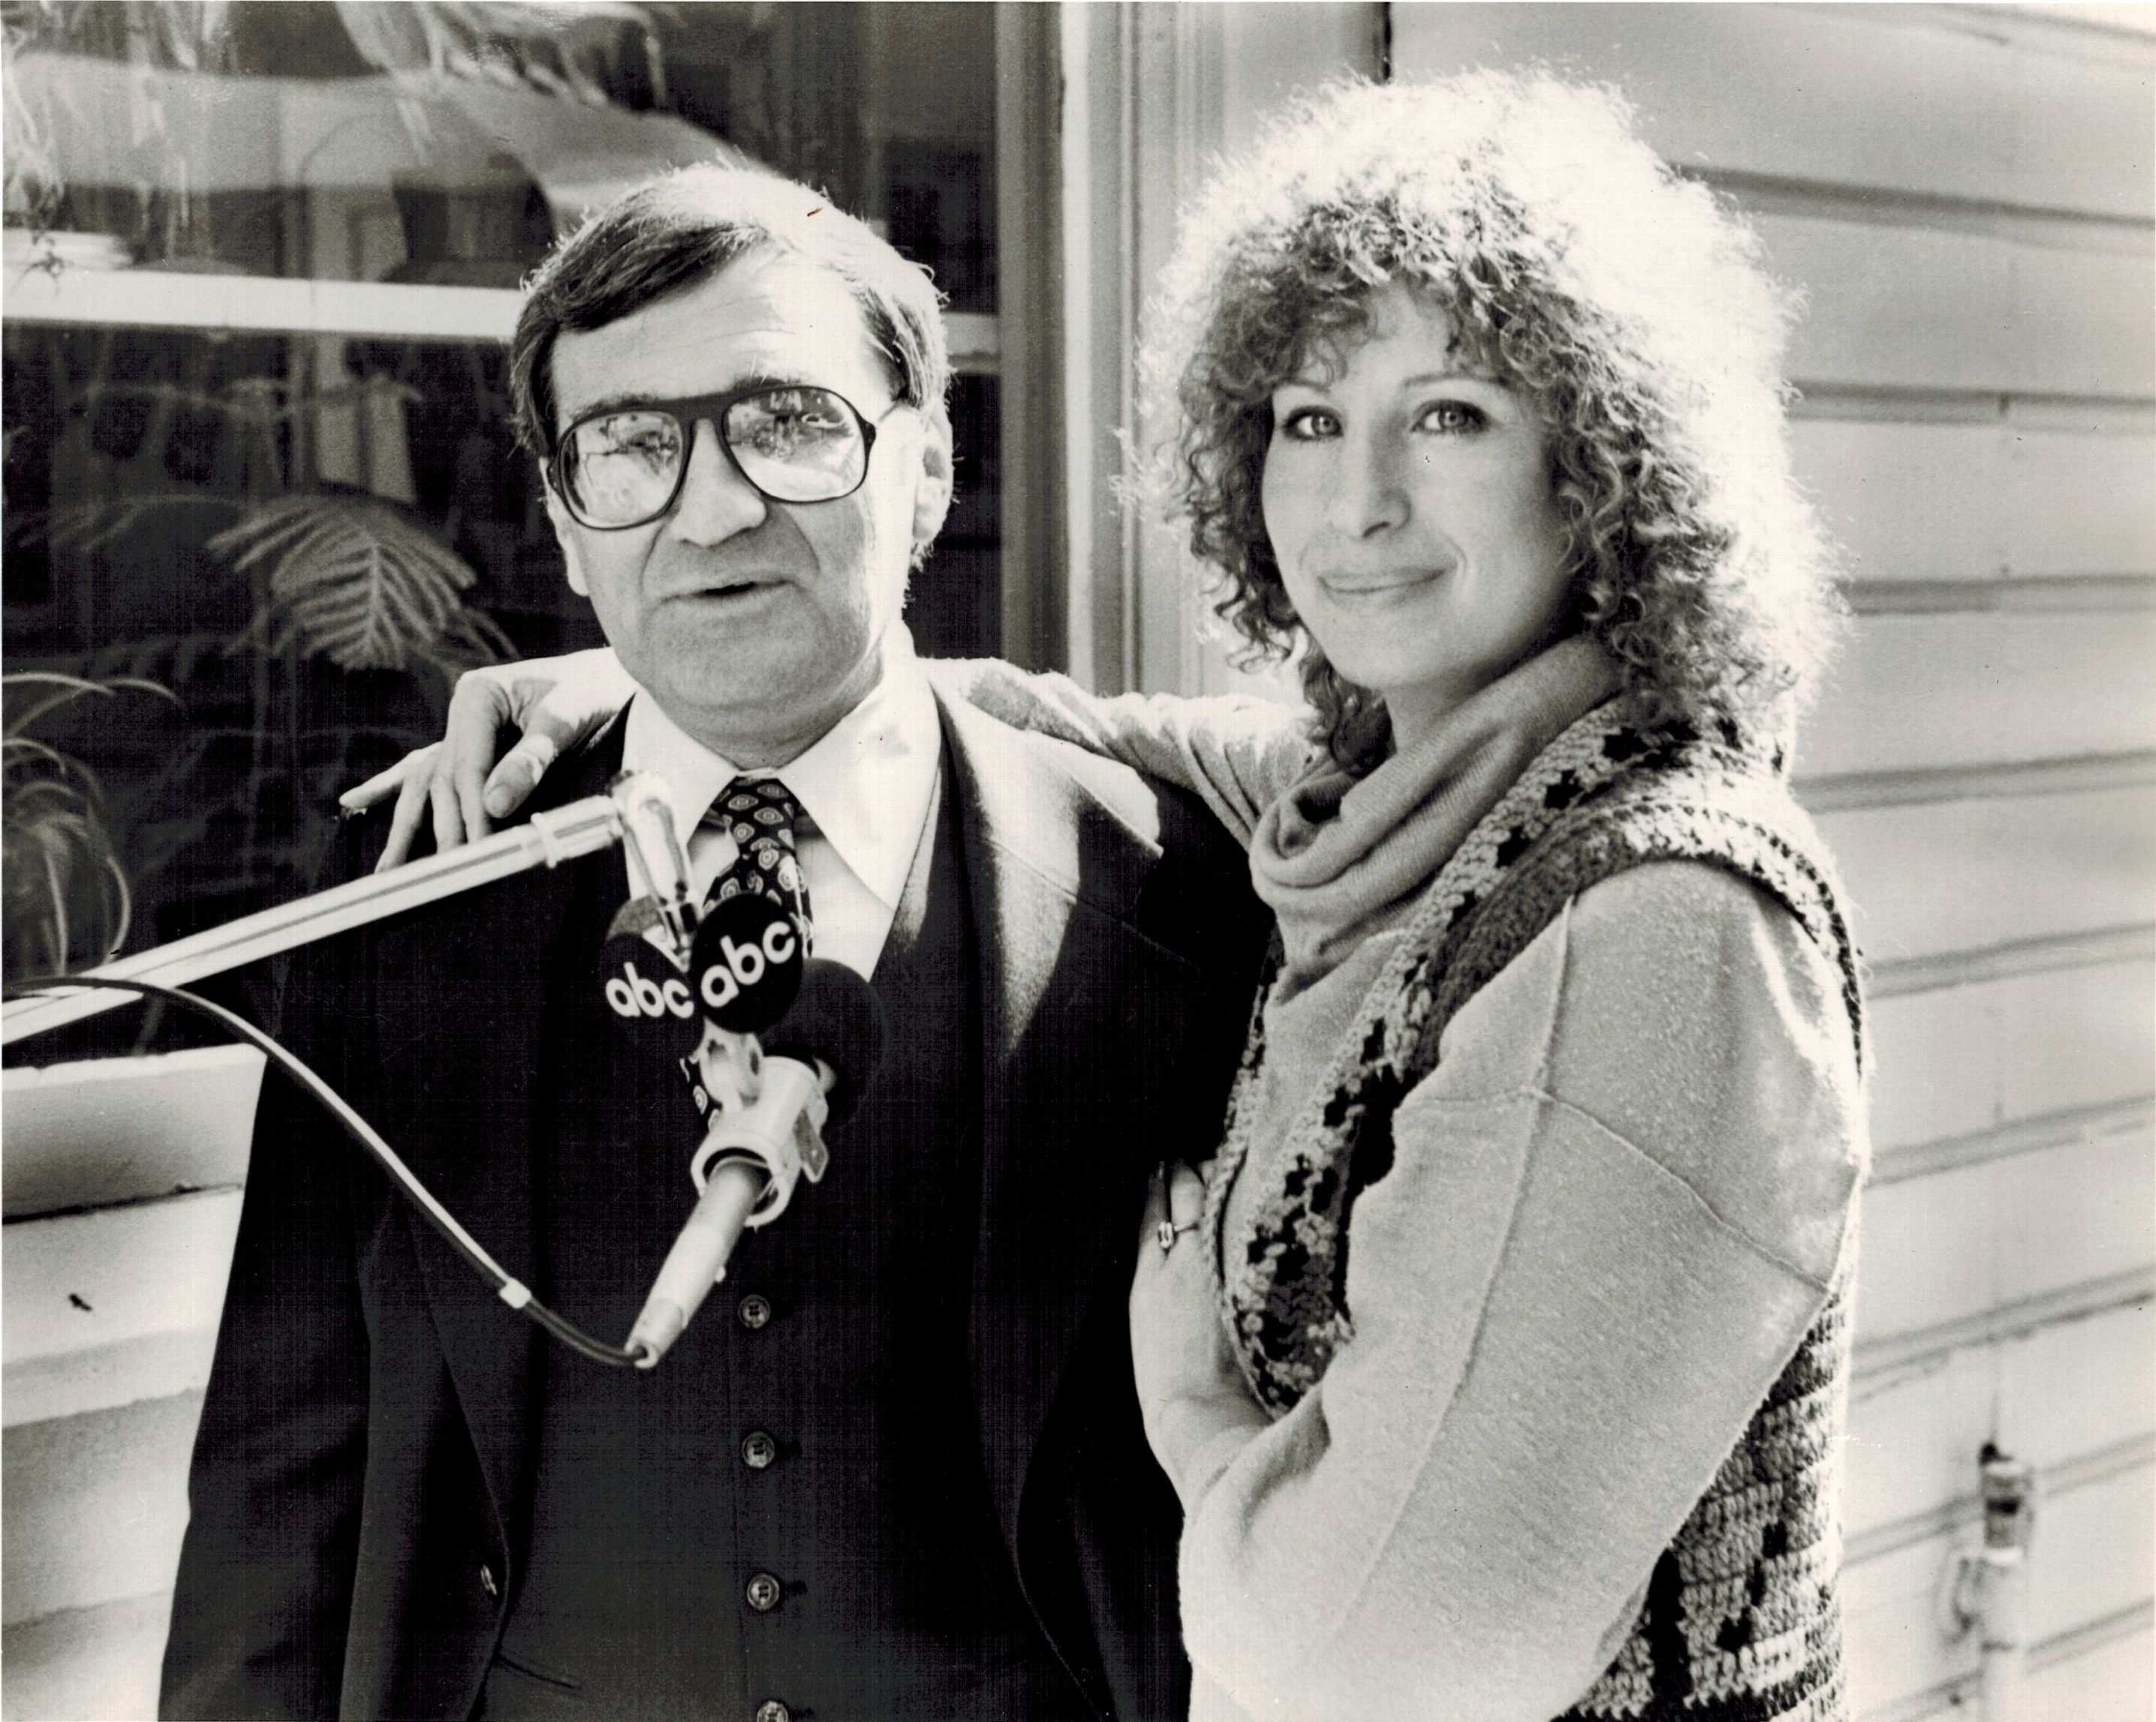 Rick Sklar interviews superstar (and fellow Brooklynite) Barbra Streisand for an ABC Radio Network program in 1979.